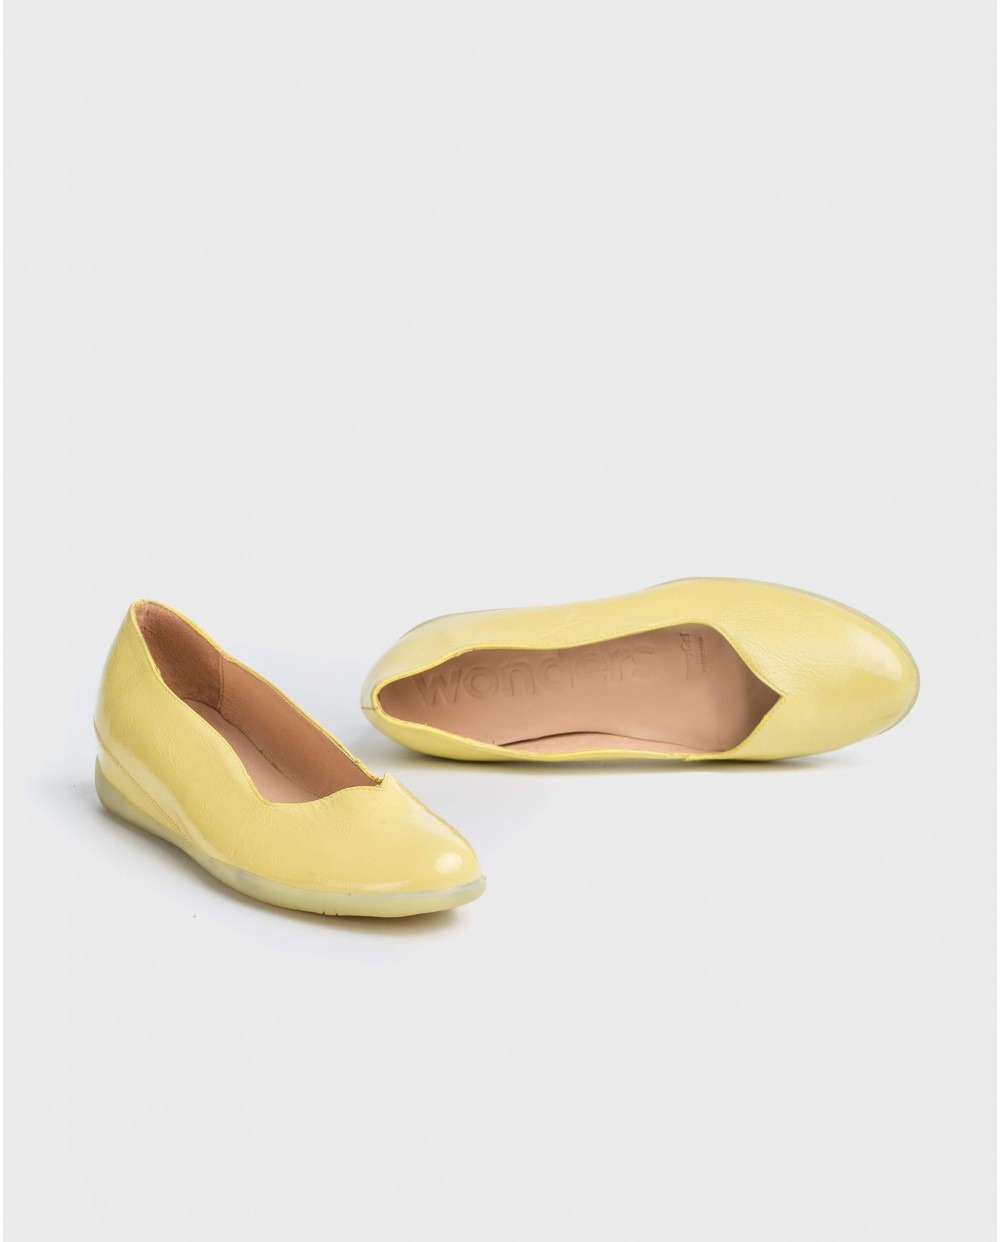 Wonders-Flat Shoes-Wave ballet pump